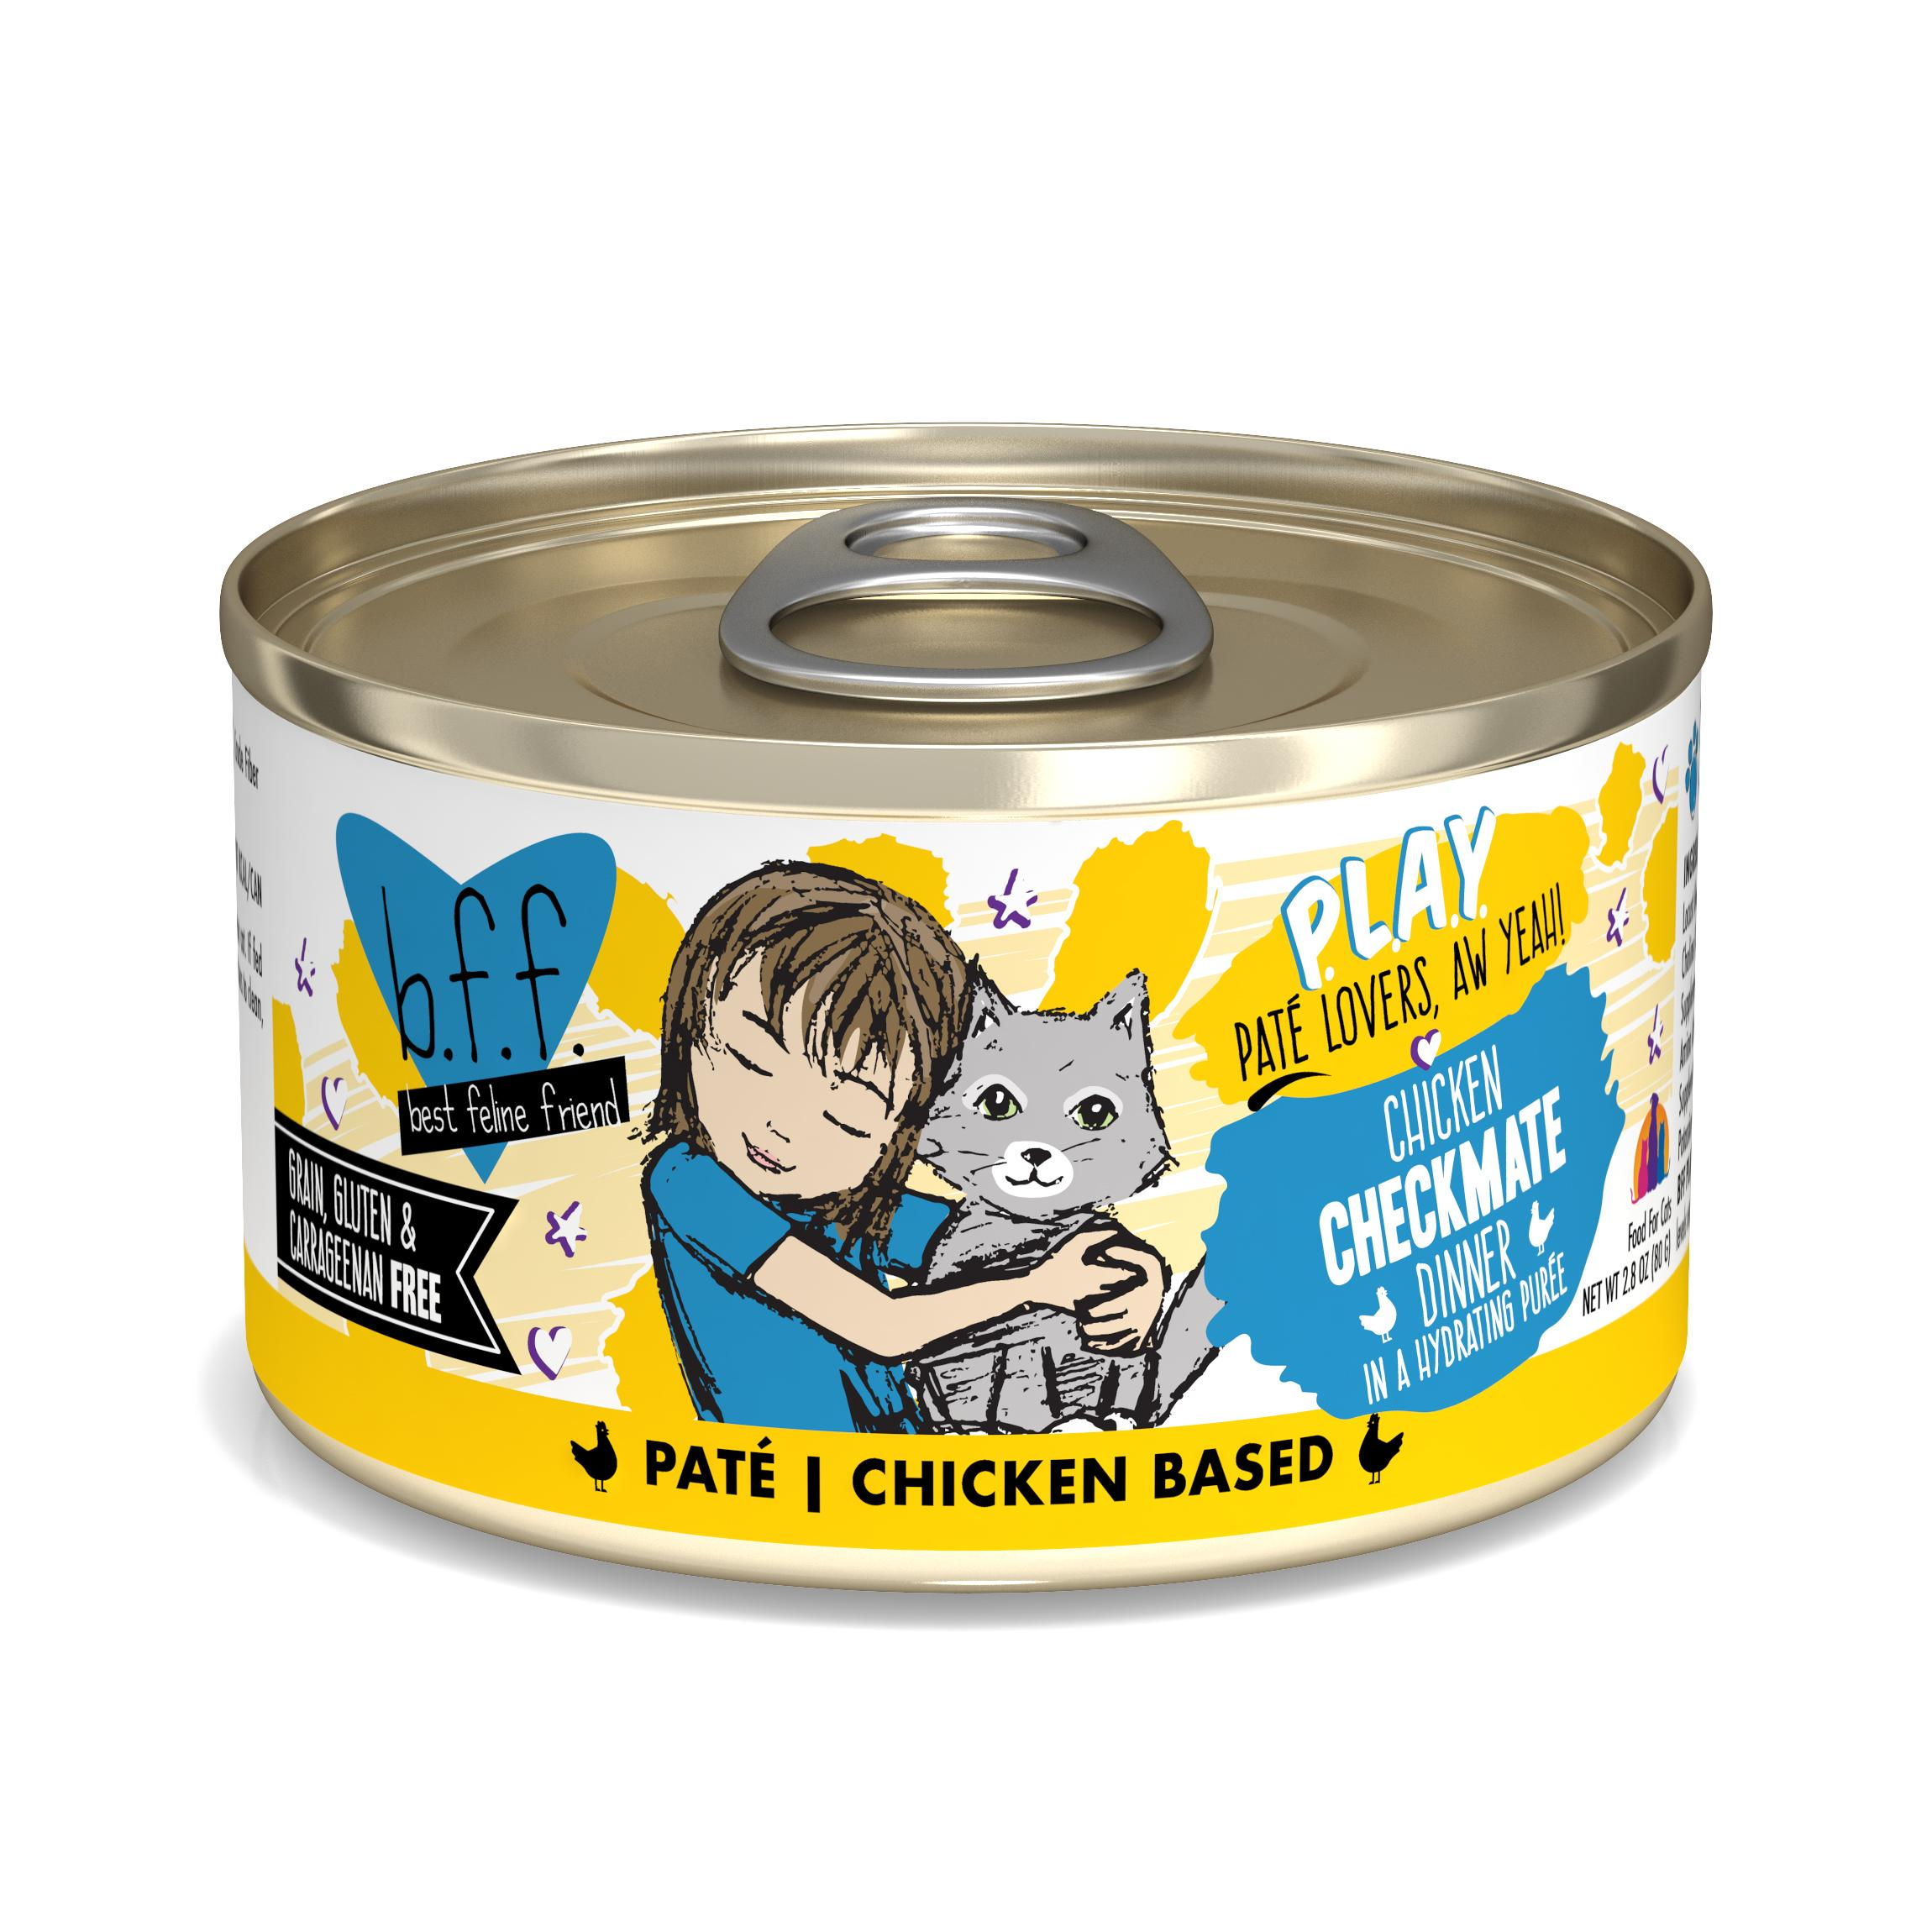 BFF PLAY Pate Checkmate Chicken Dinner in Puree Grain-Free Wet Cat Food, 2.8-oz